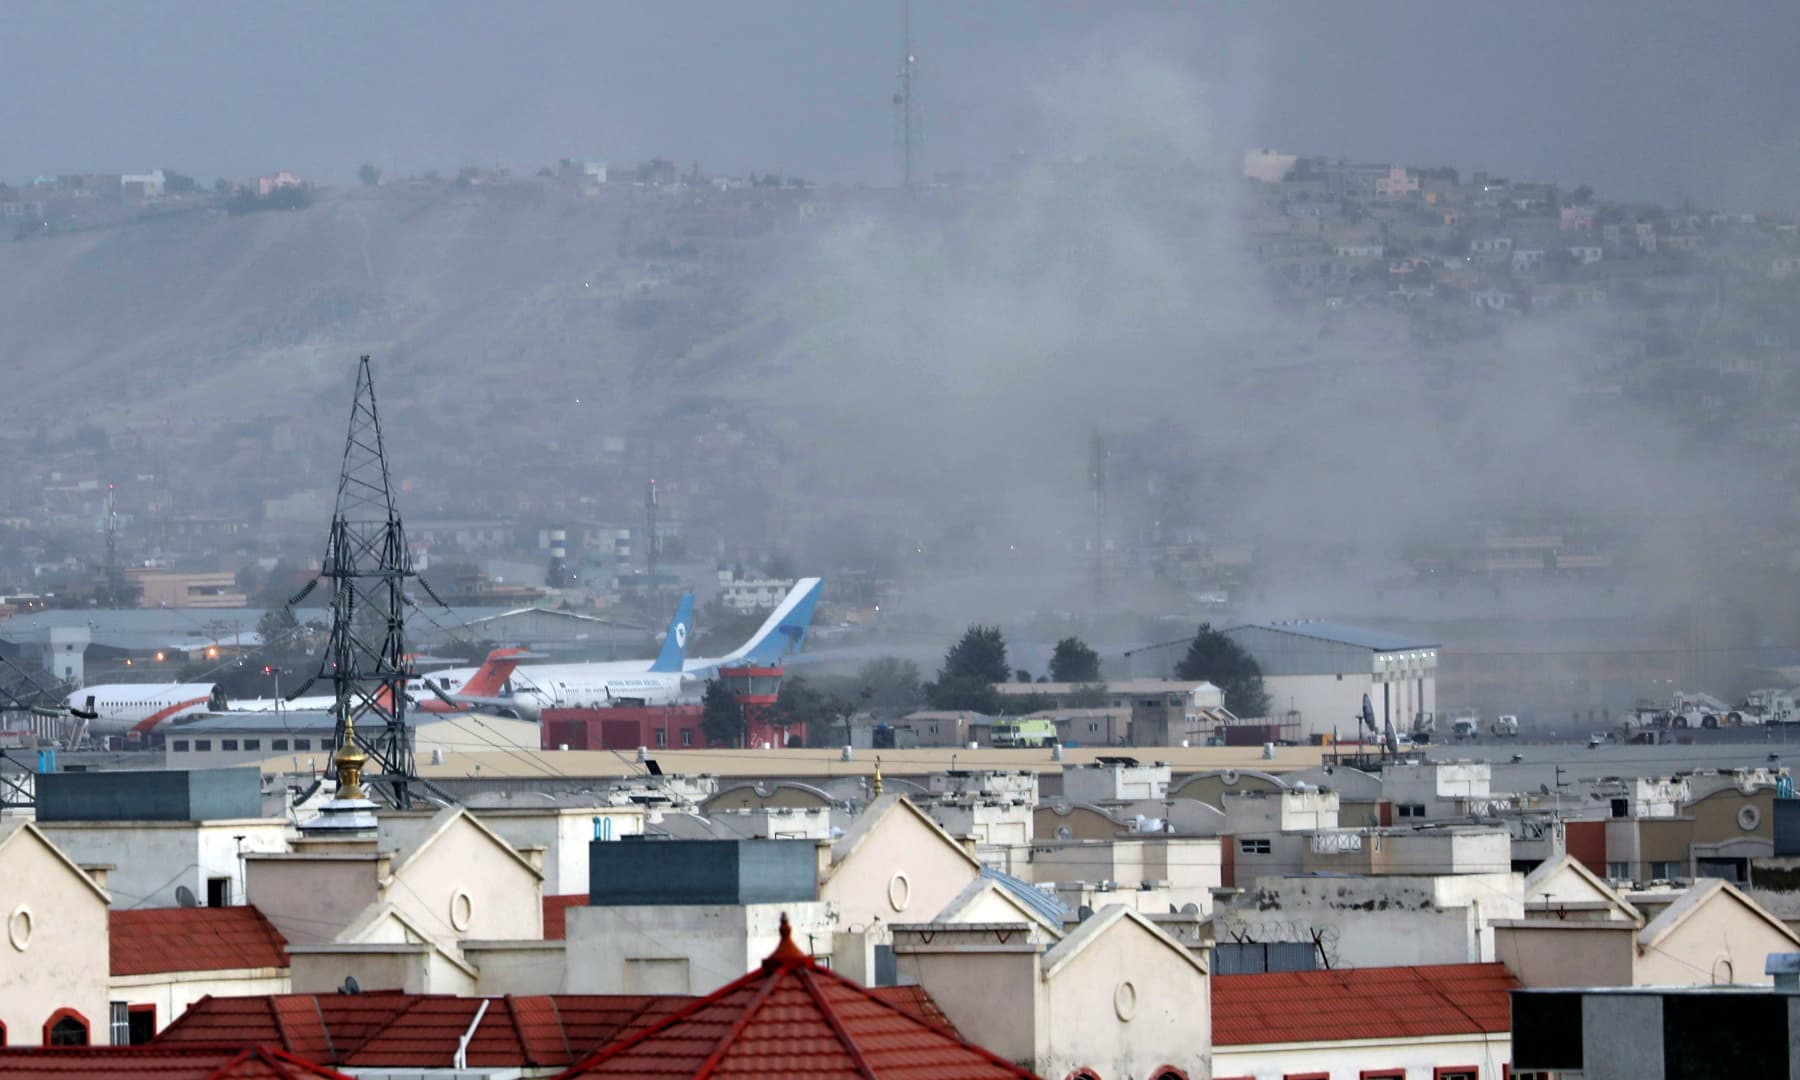 Smoke rises from a deadly explosion outside the airport in Kabul, Afghanistan on August 26, 2021. — AP